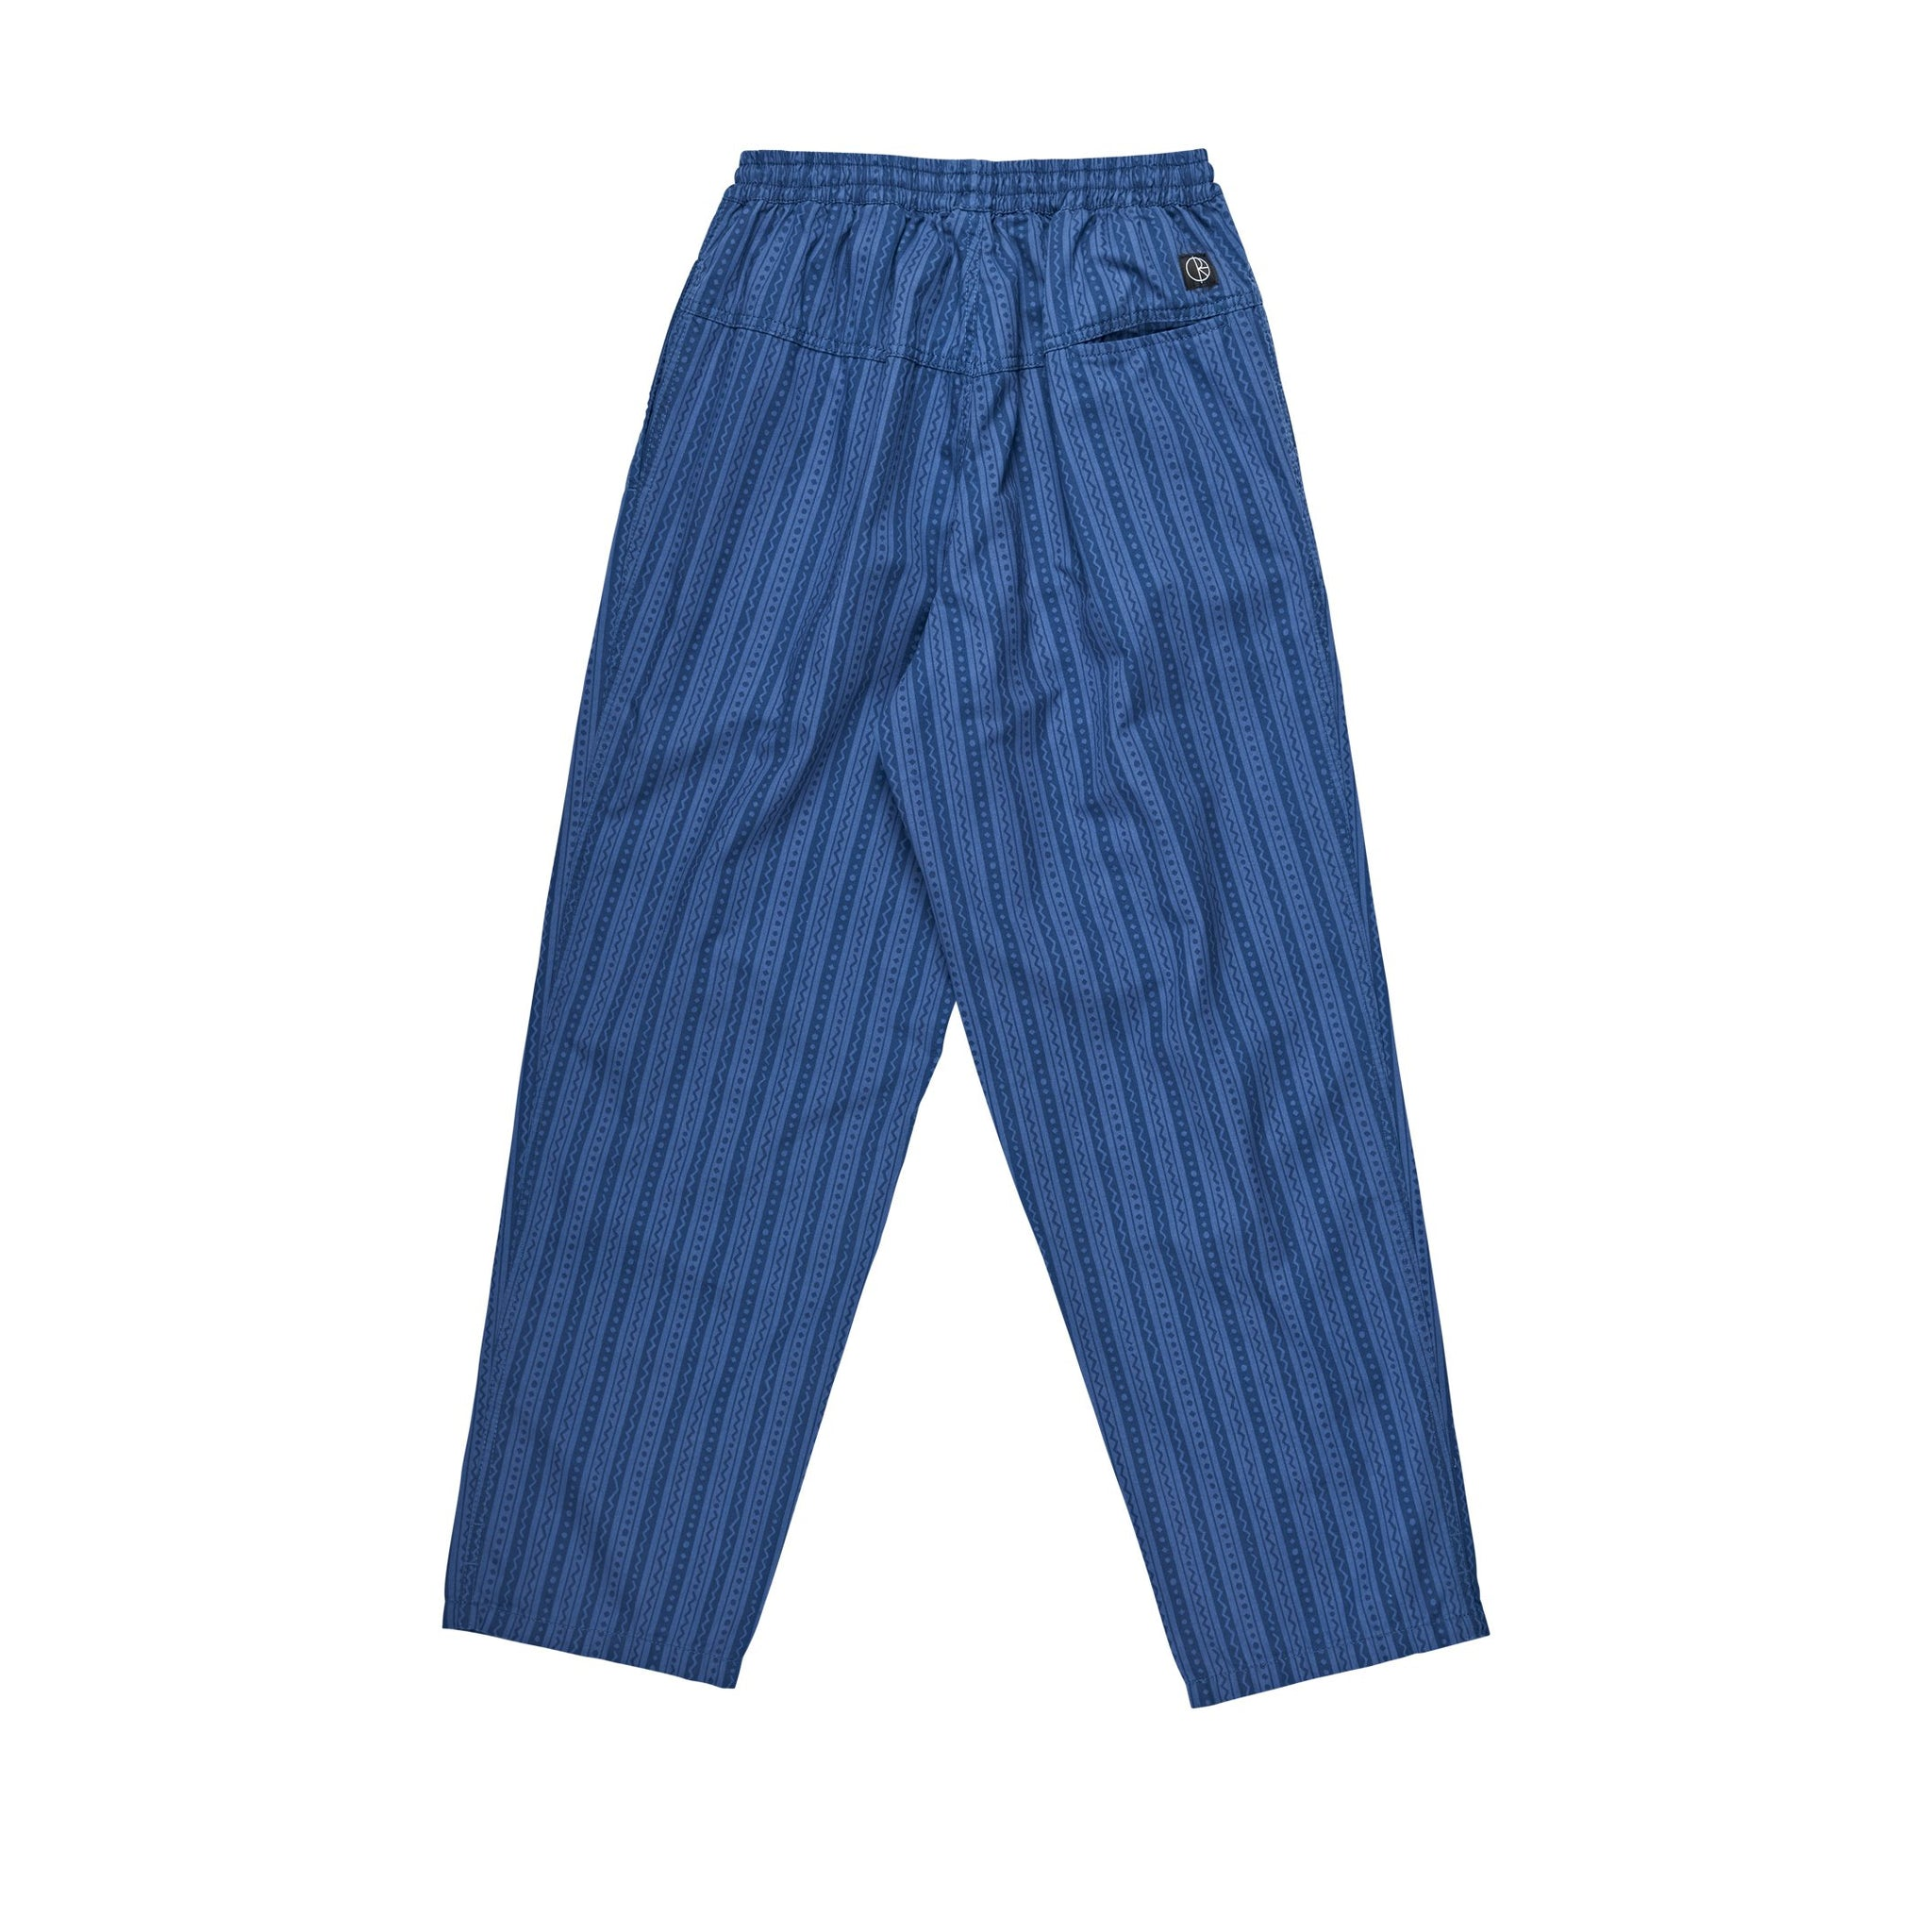 POLAR WAVY SURF PANTS